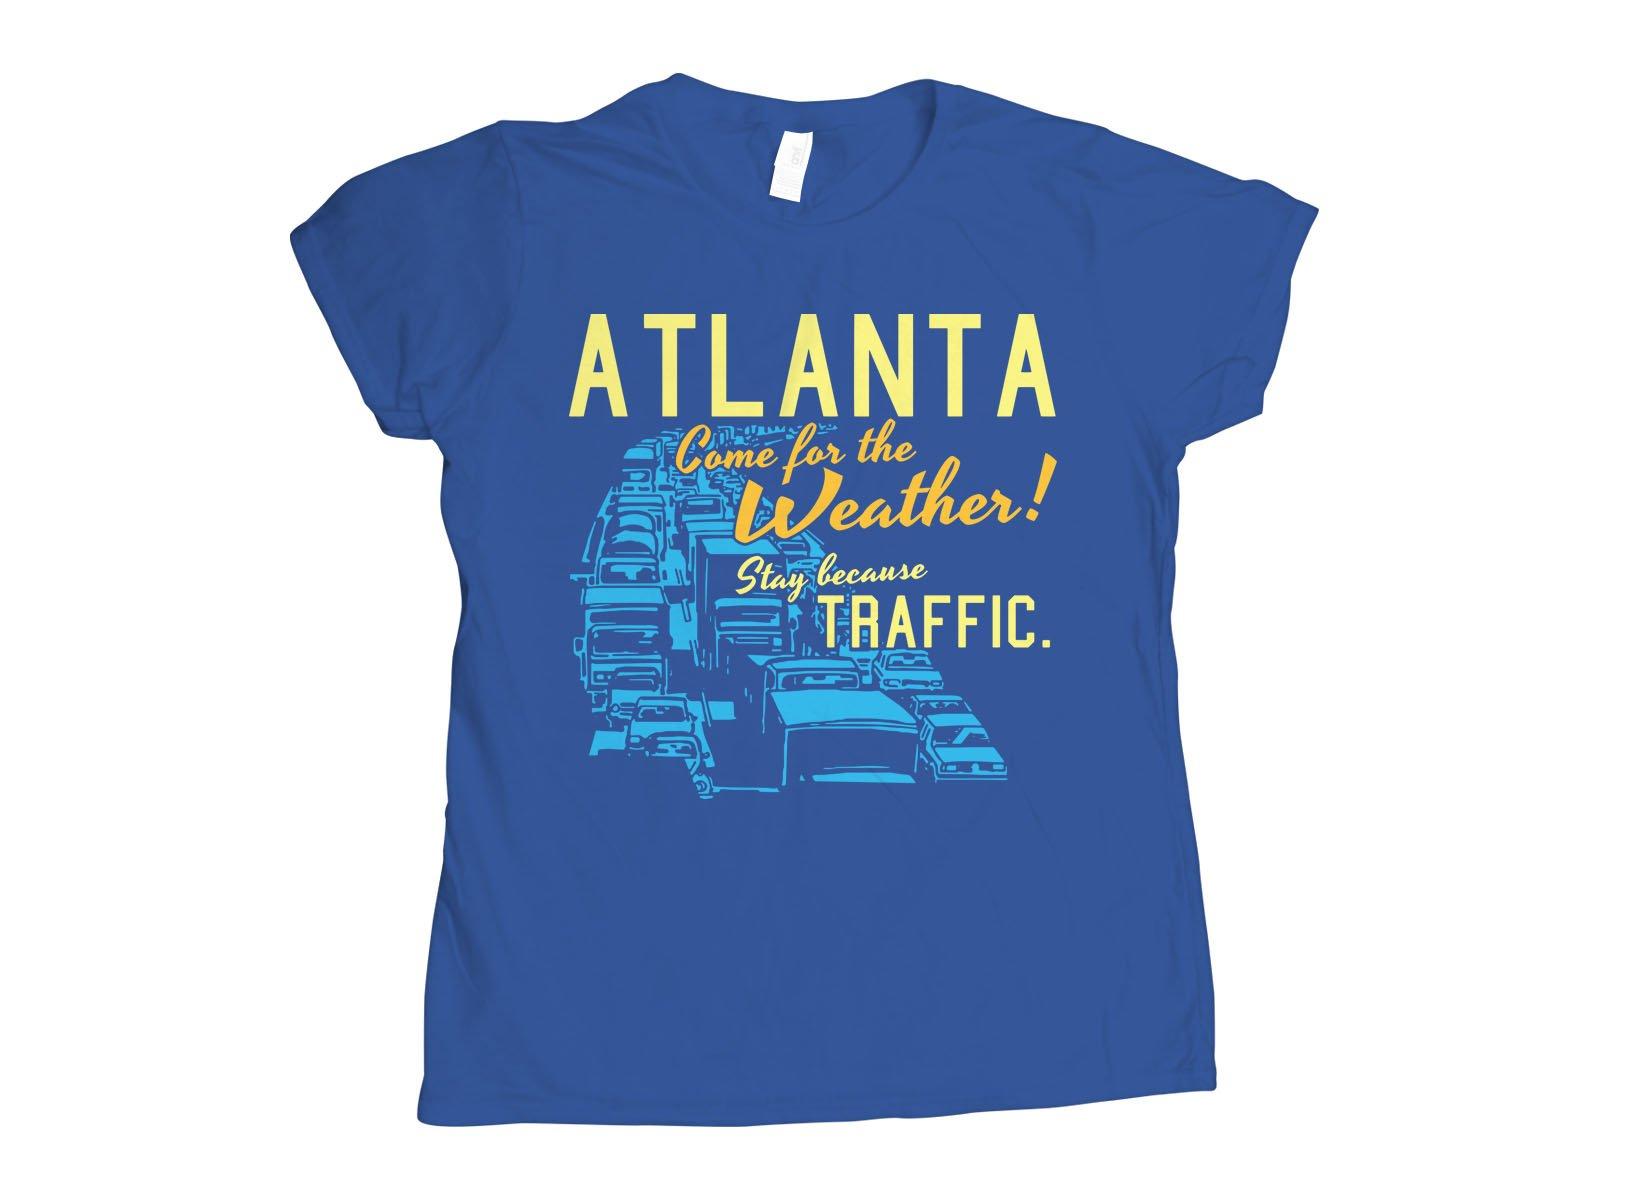 Atlanta, Come For The Weather on Womens T-Shirt